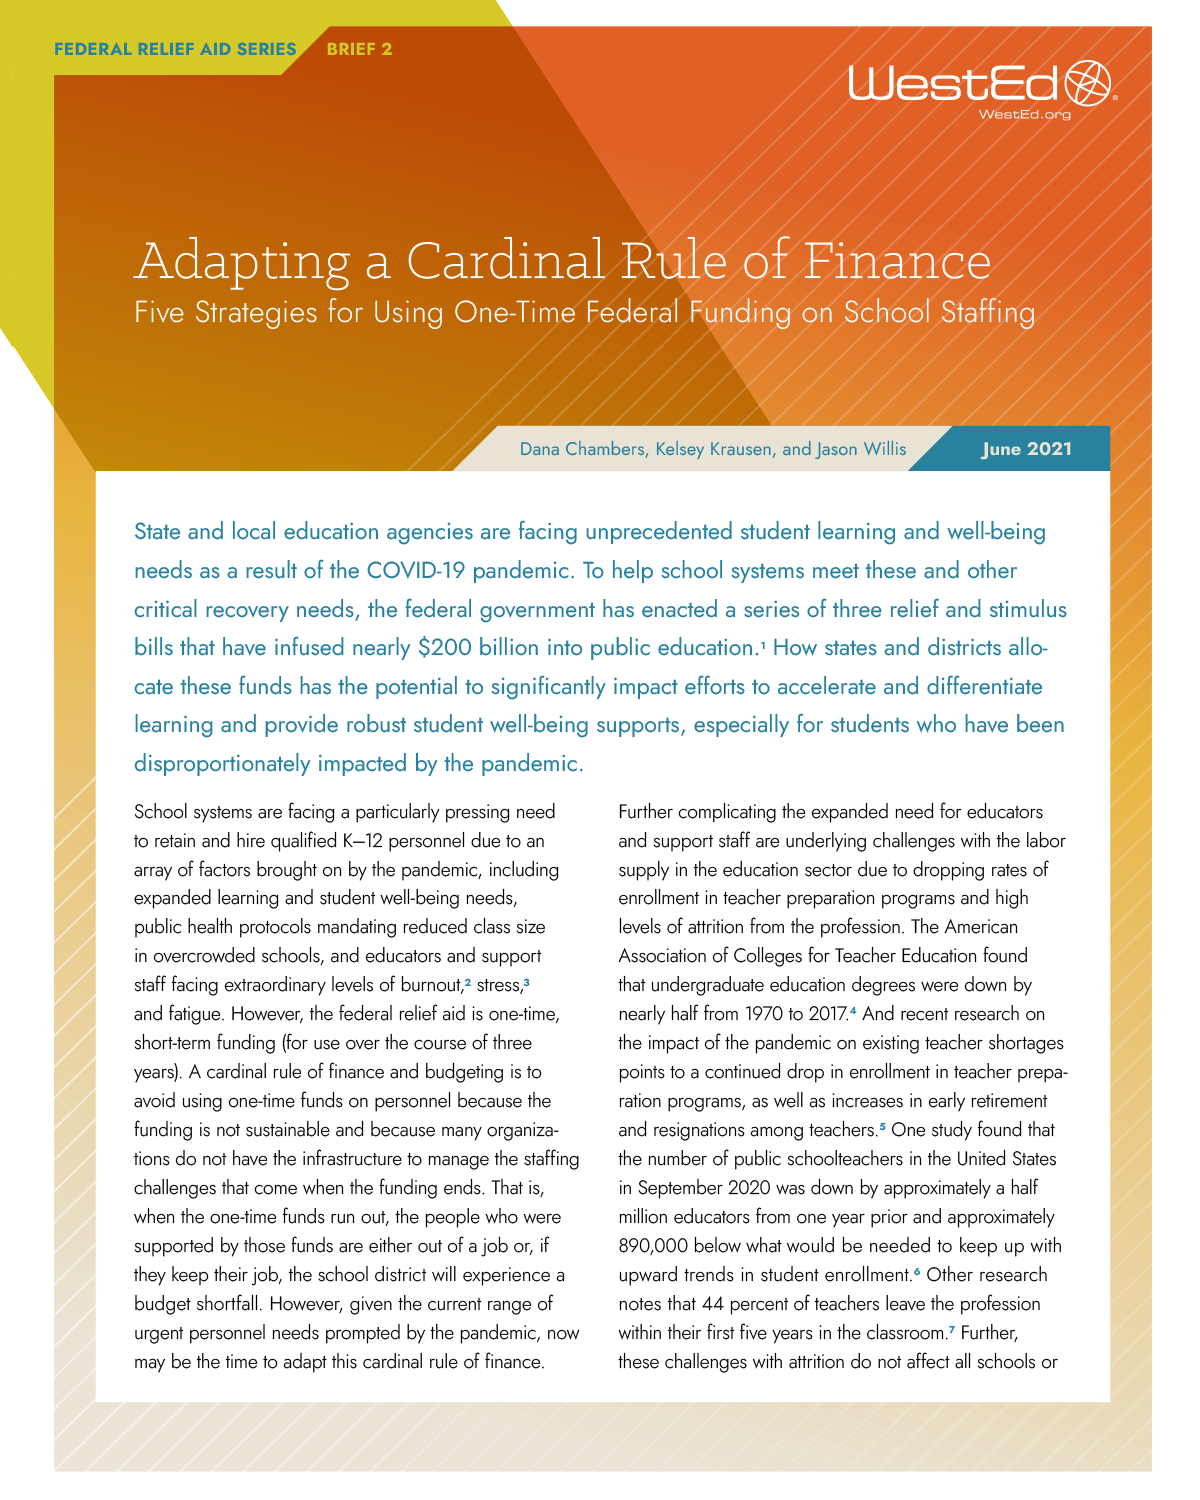 FEDERAL RELIEF AID SERIES BRIEF 2: Adapting a Cardinal Rule of Finance Five Strategies for Using One-Time Federal Funding on School Staffing